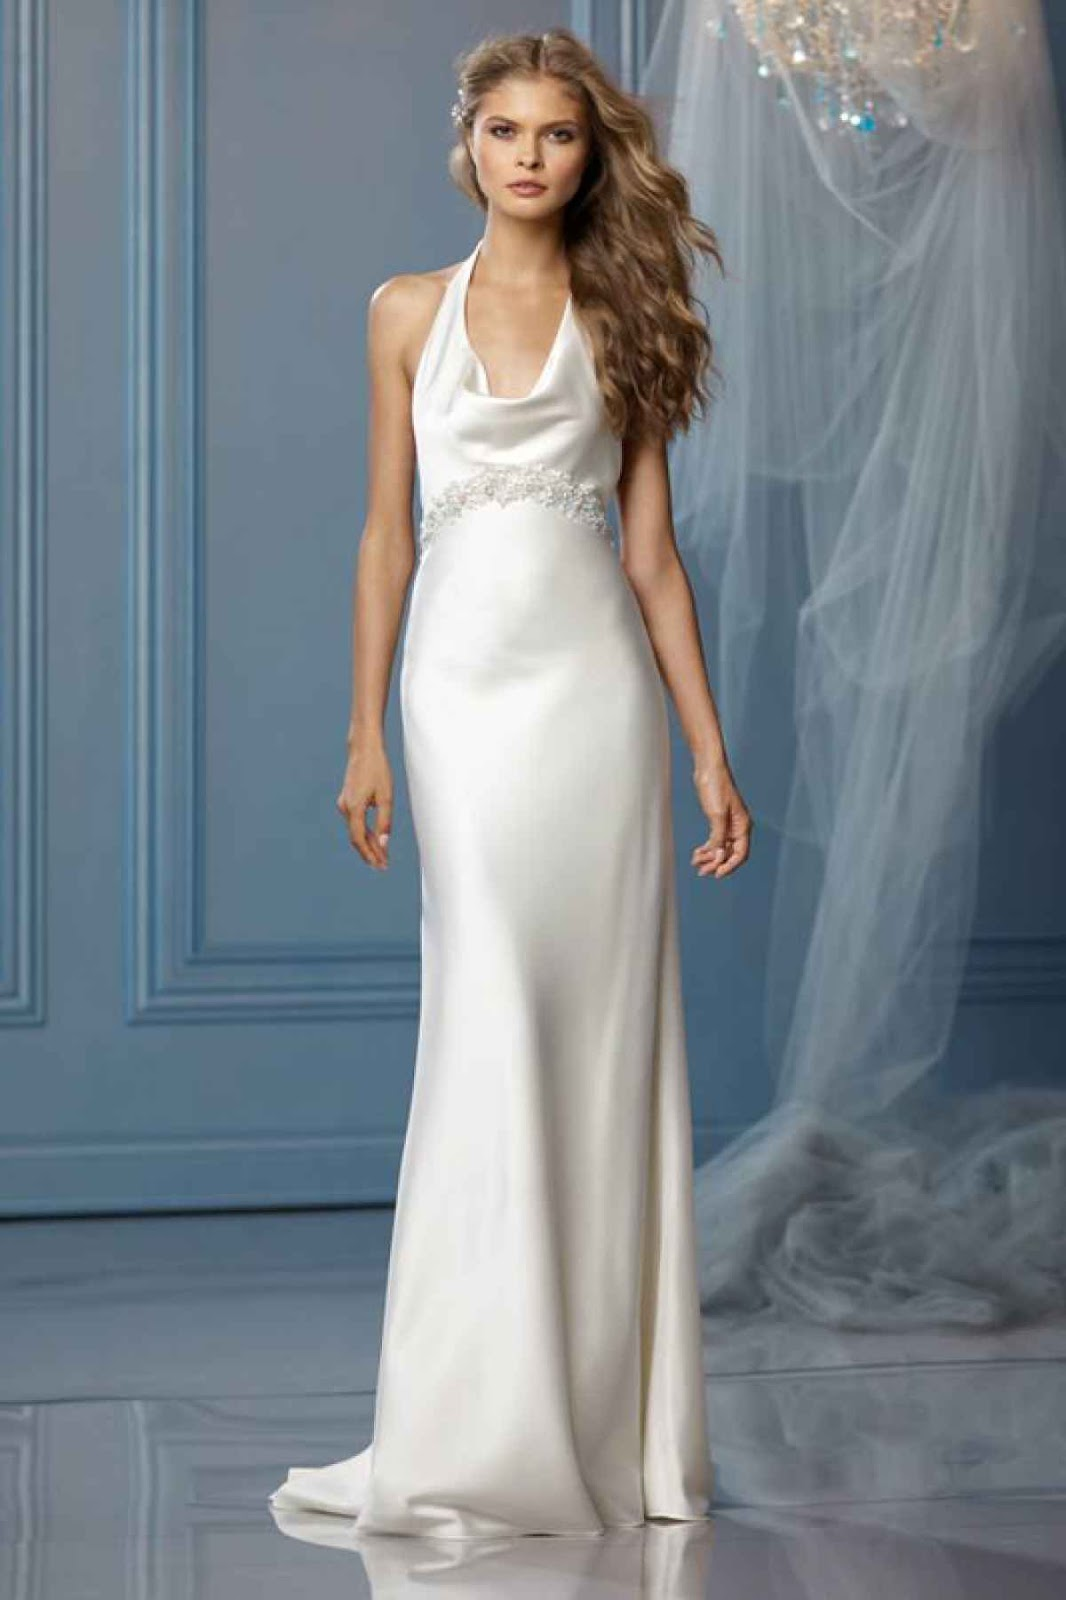 Very Cheap Bridesmaid Dresses